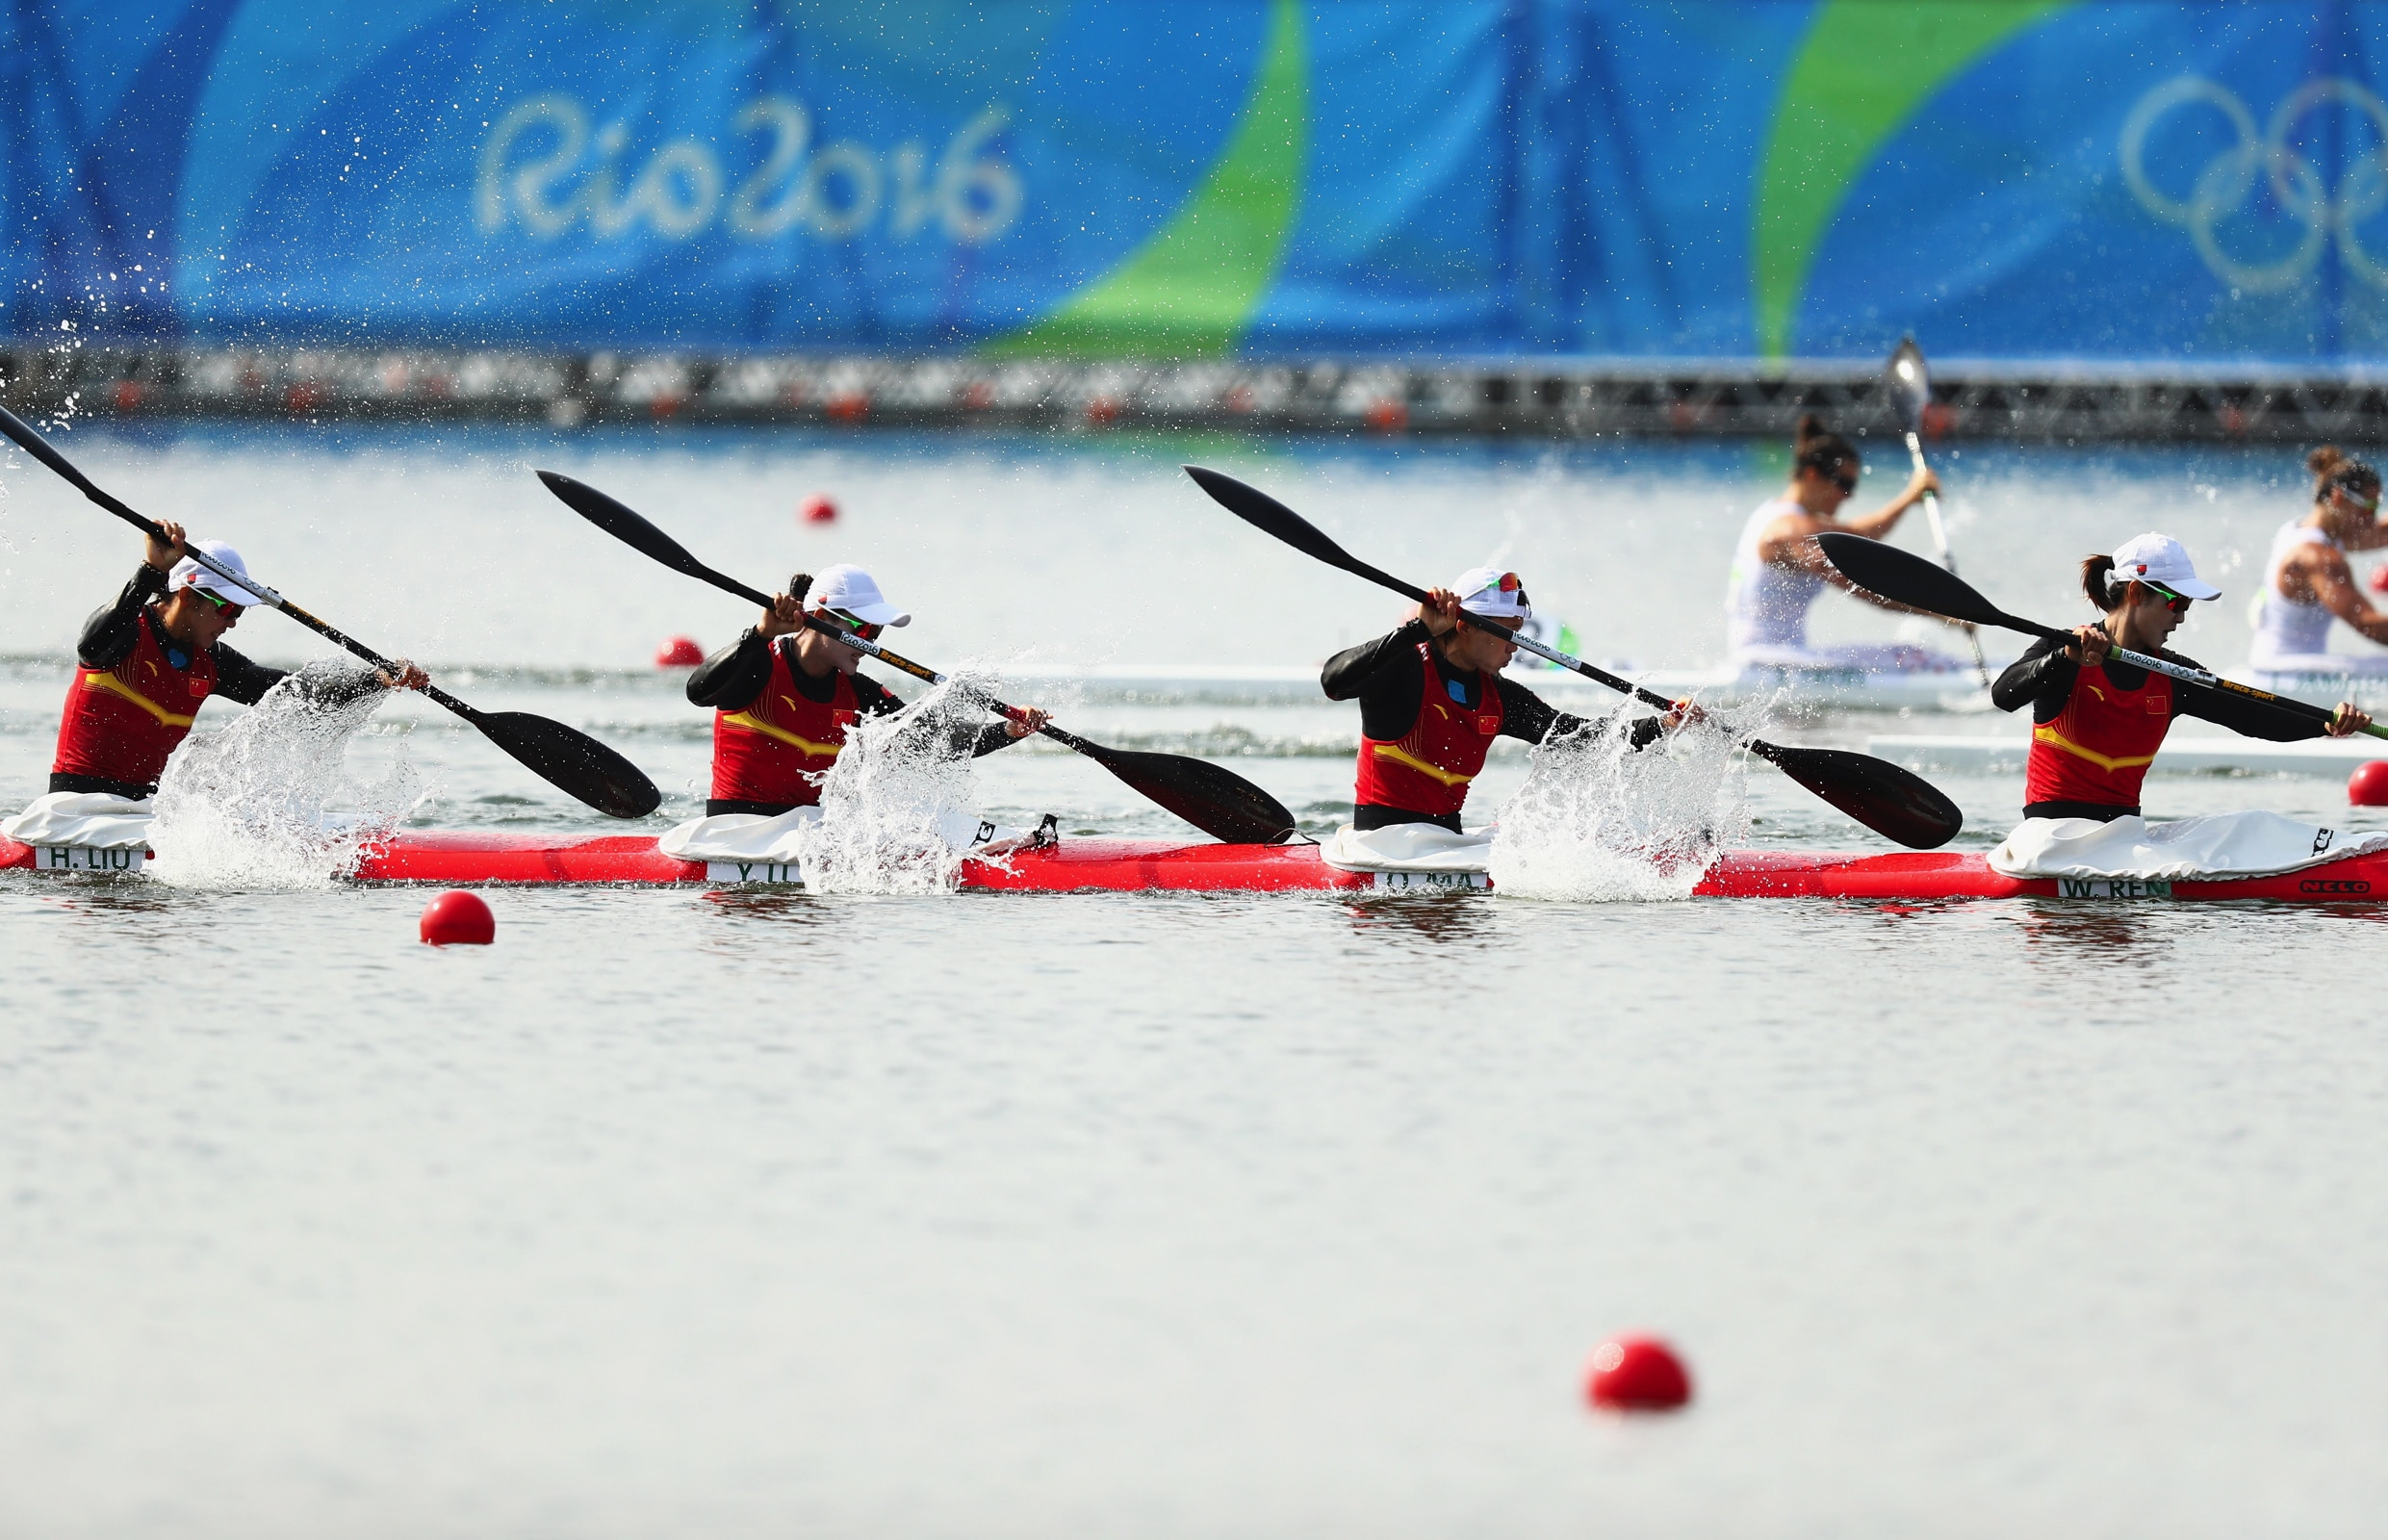 Canoe Sprint - K-4 500m Women